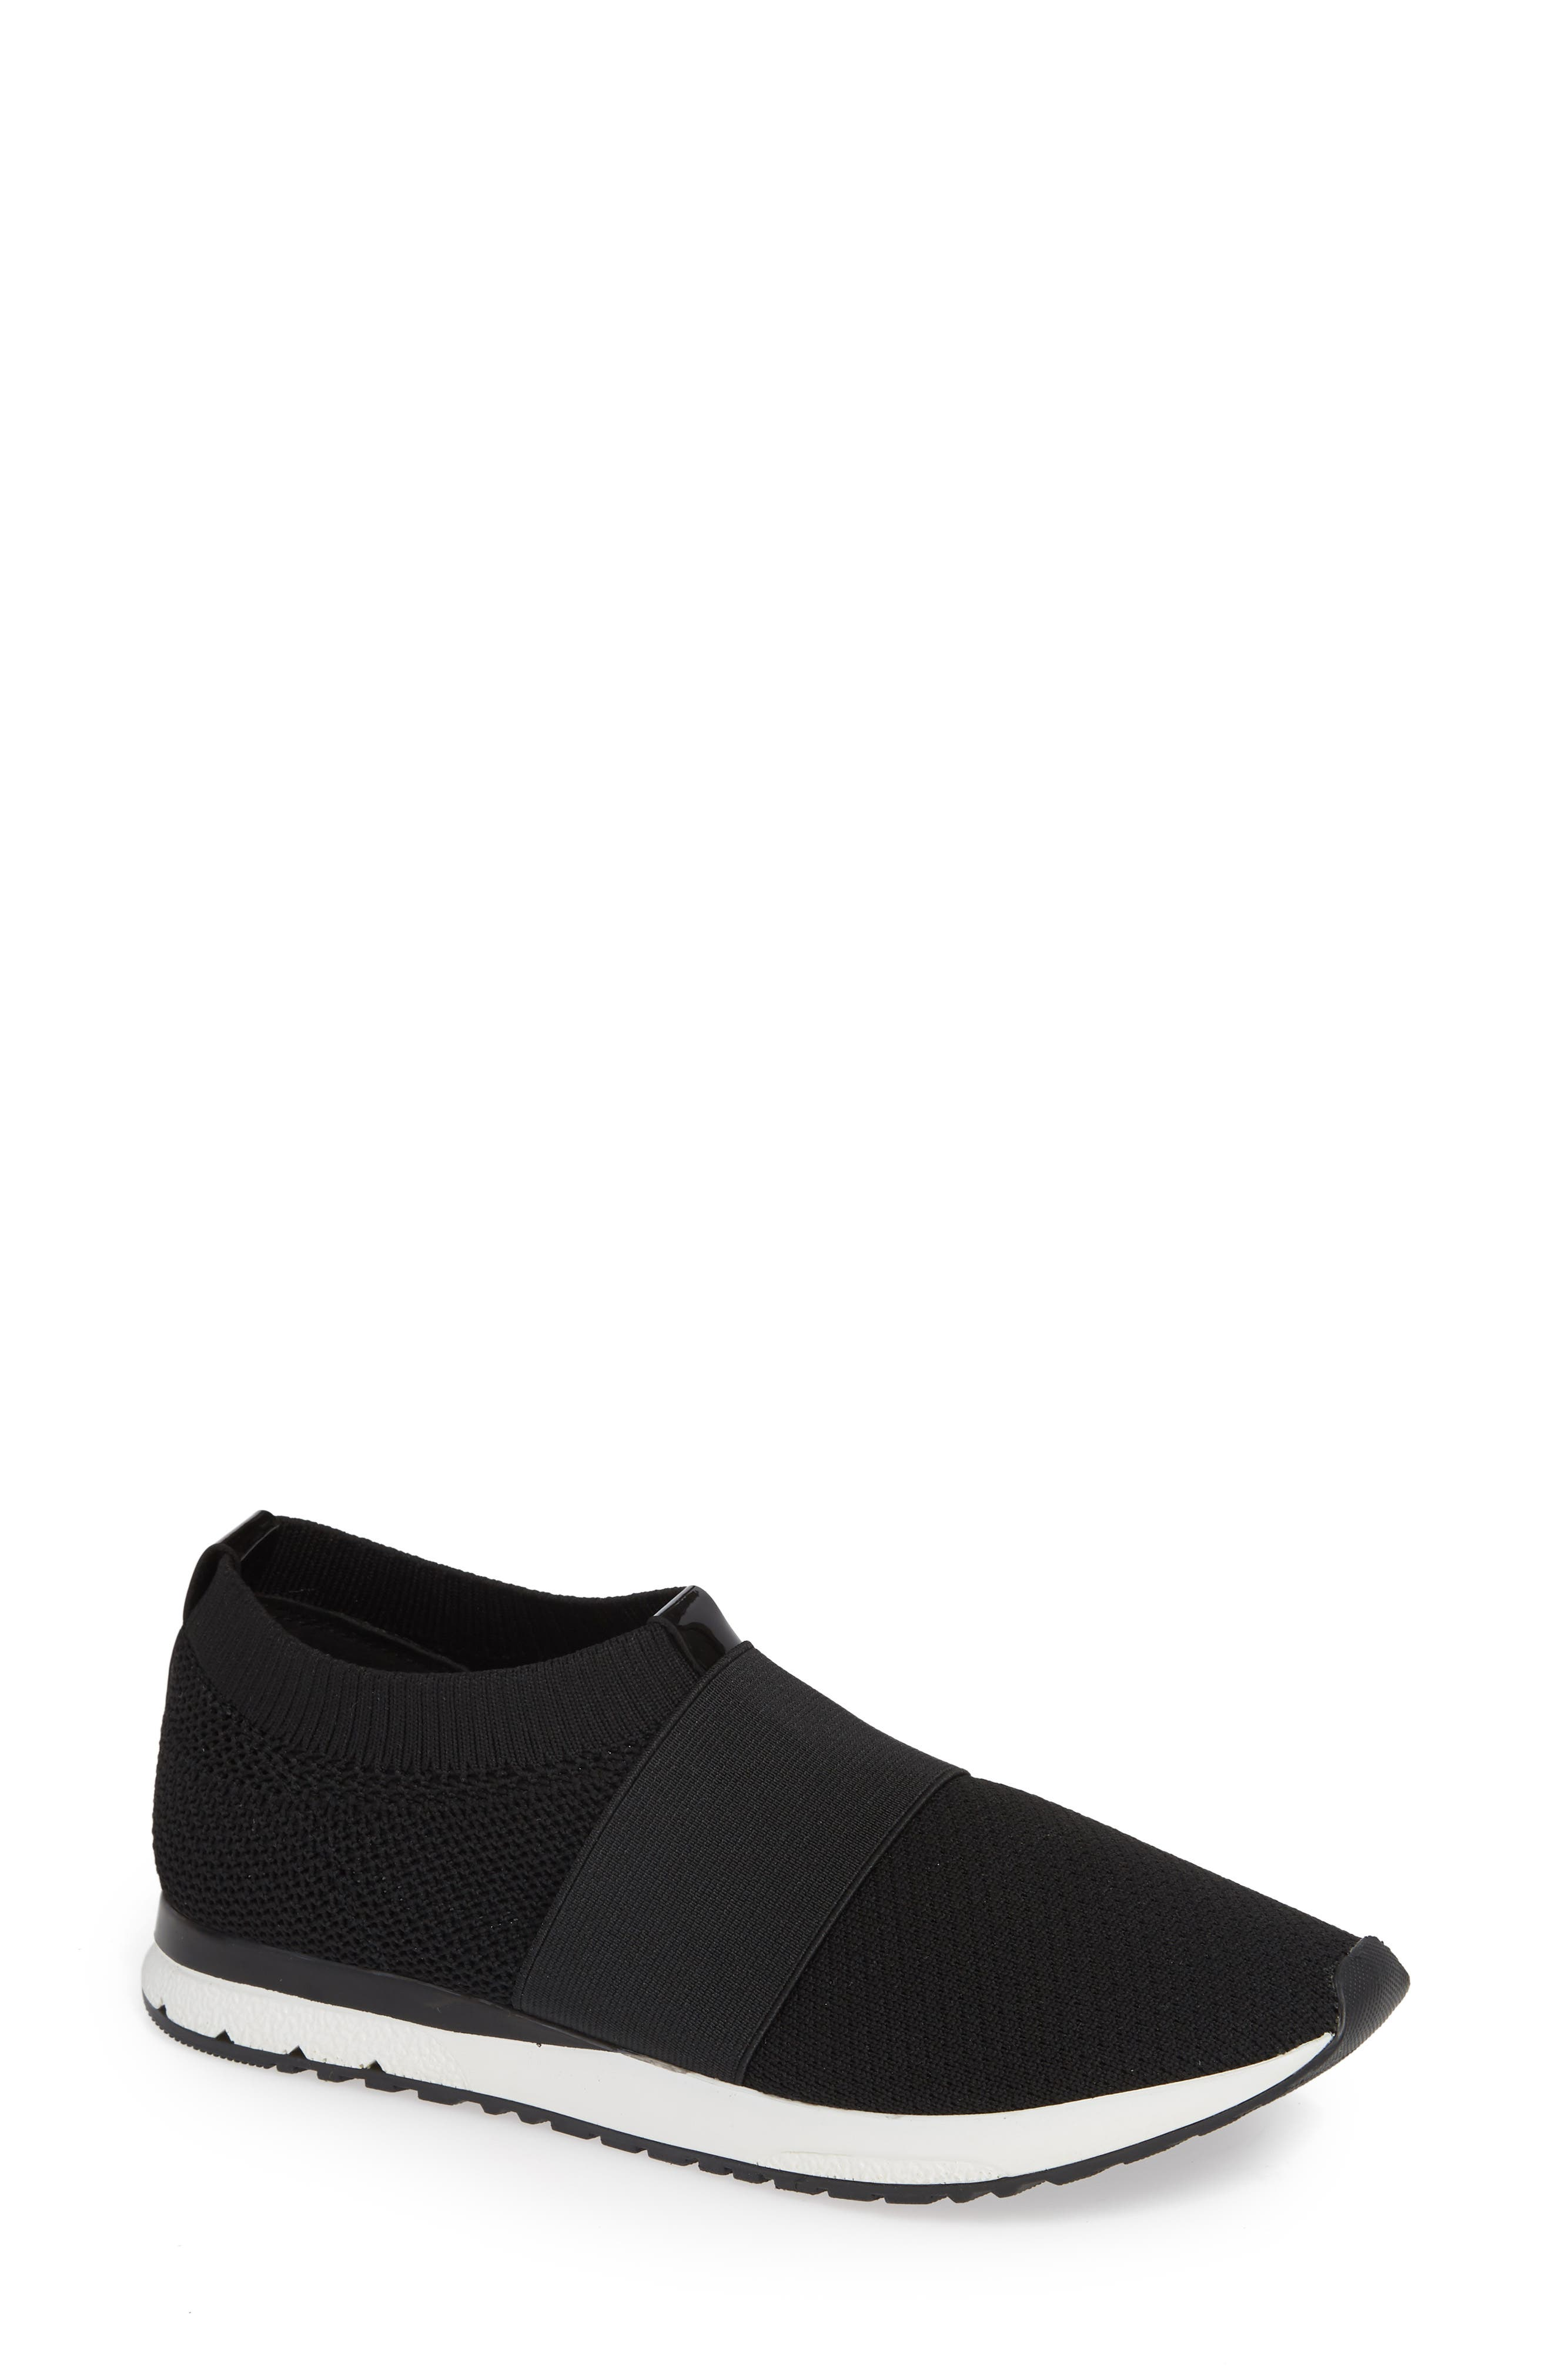 Brooke Slip-On Sneaker,                         Main,                         color, BLACK KNIT FABRIC